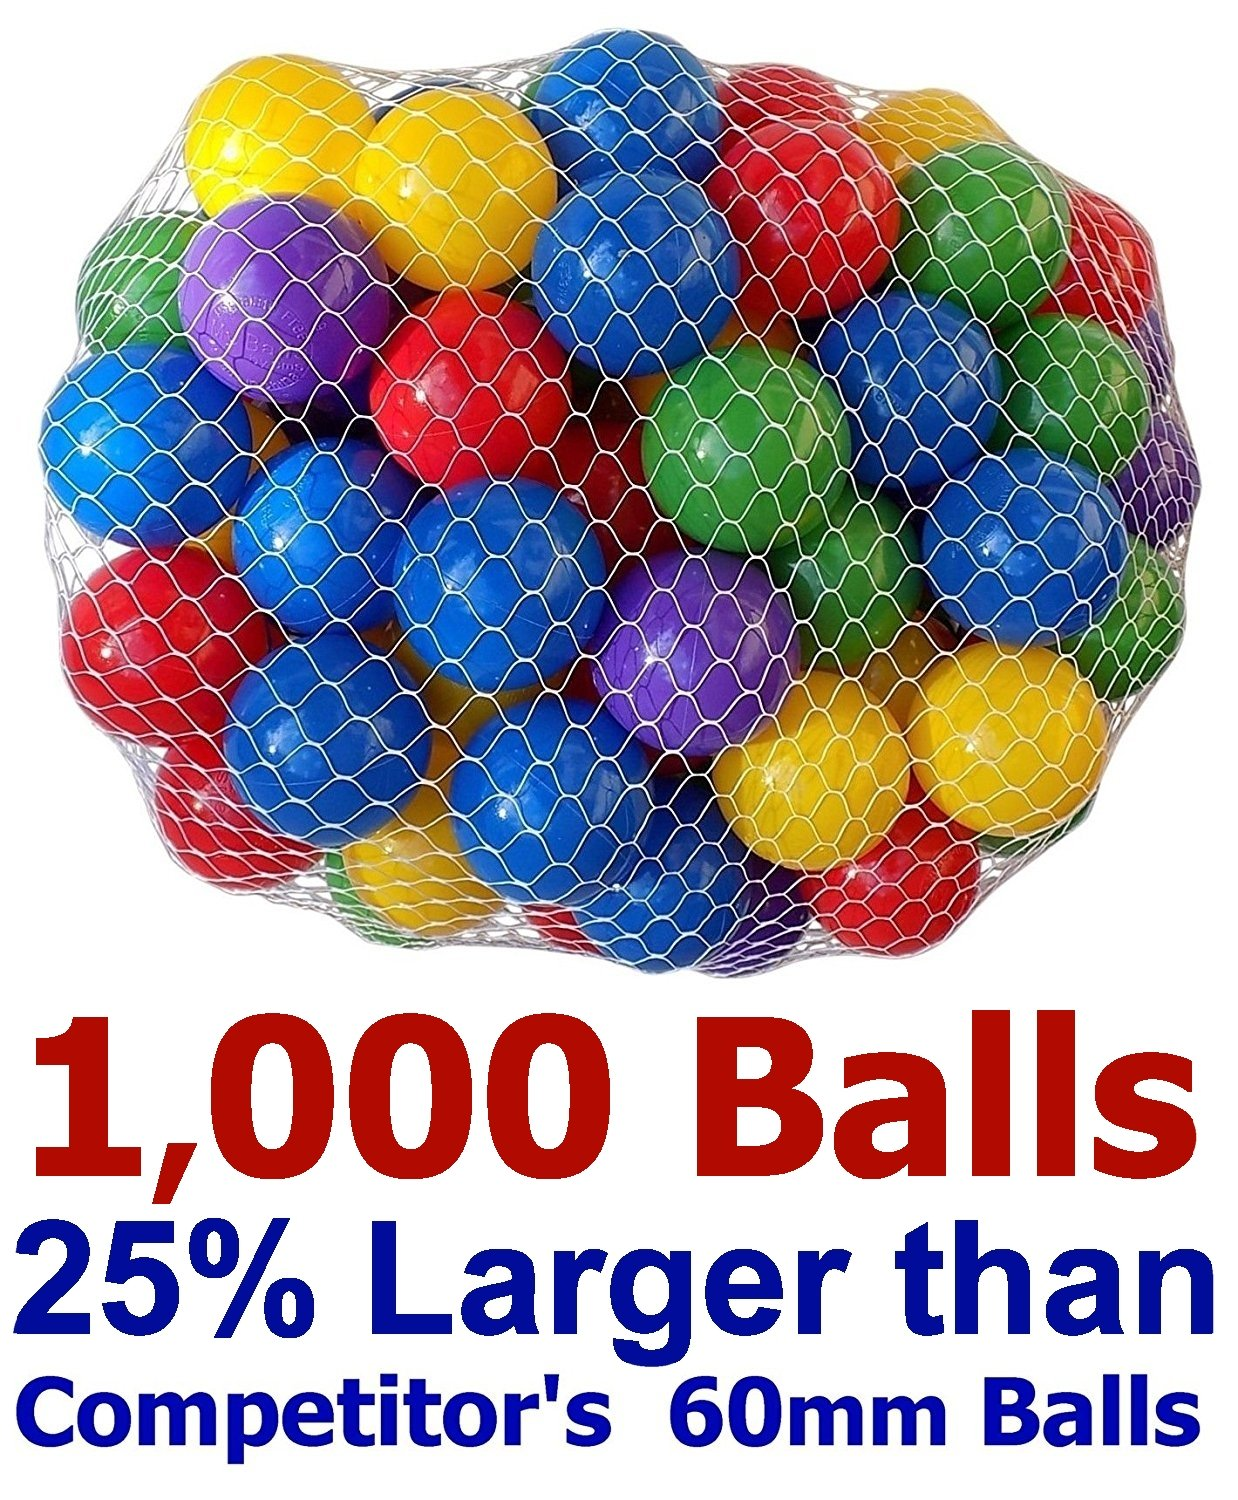 4 DAY SALE -Pack of 1000 Large 2.5'' 65mm Ball Pit Balls - 5 Bright Colors; Crush-Proof Air-Filled; Phthalate Free; BPA Free; Non-Toxic; Non-PVC; Non-Recycled Plastic( 25% Larger than 2.3'' 60mm Balls ) by My Balls by CMS